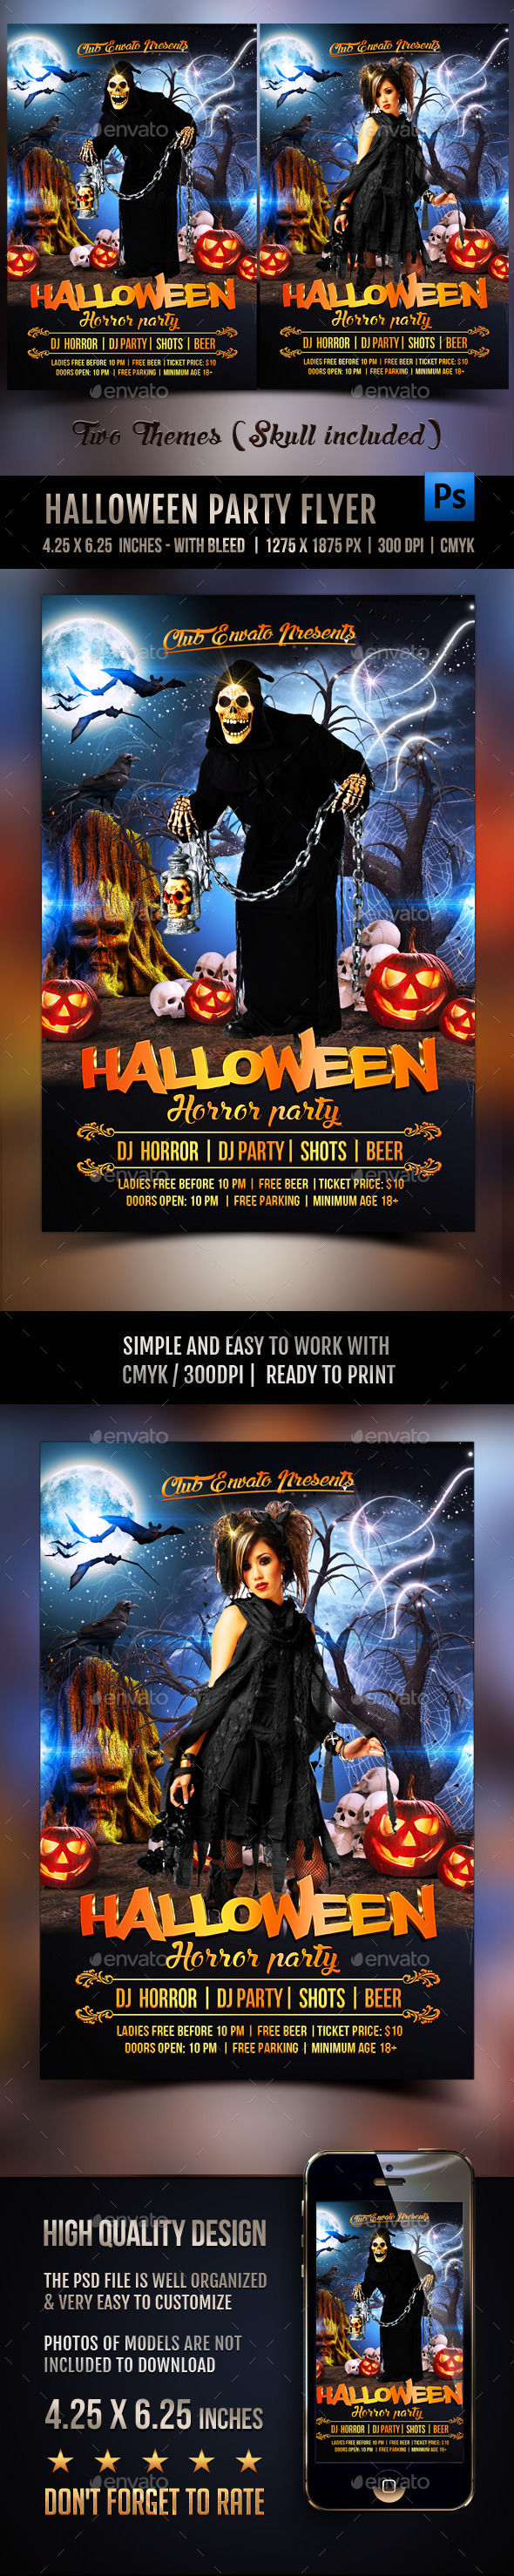 Halloween Party Flyer by Rembassio (Halloween party flyer)